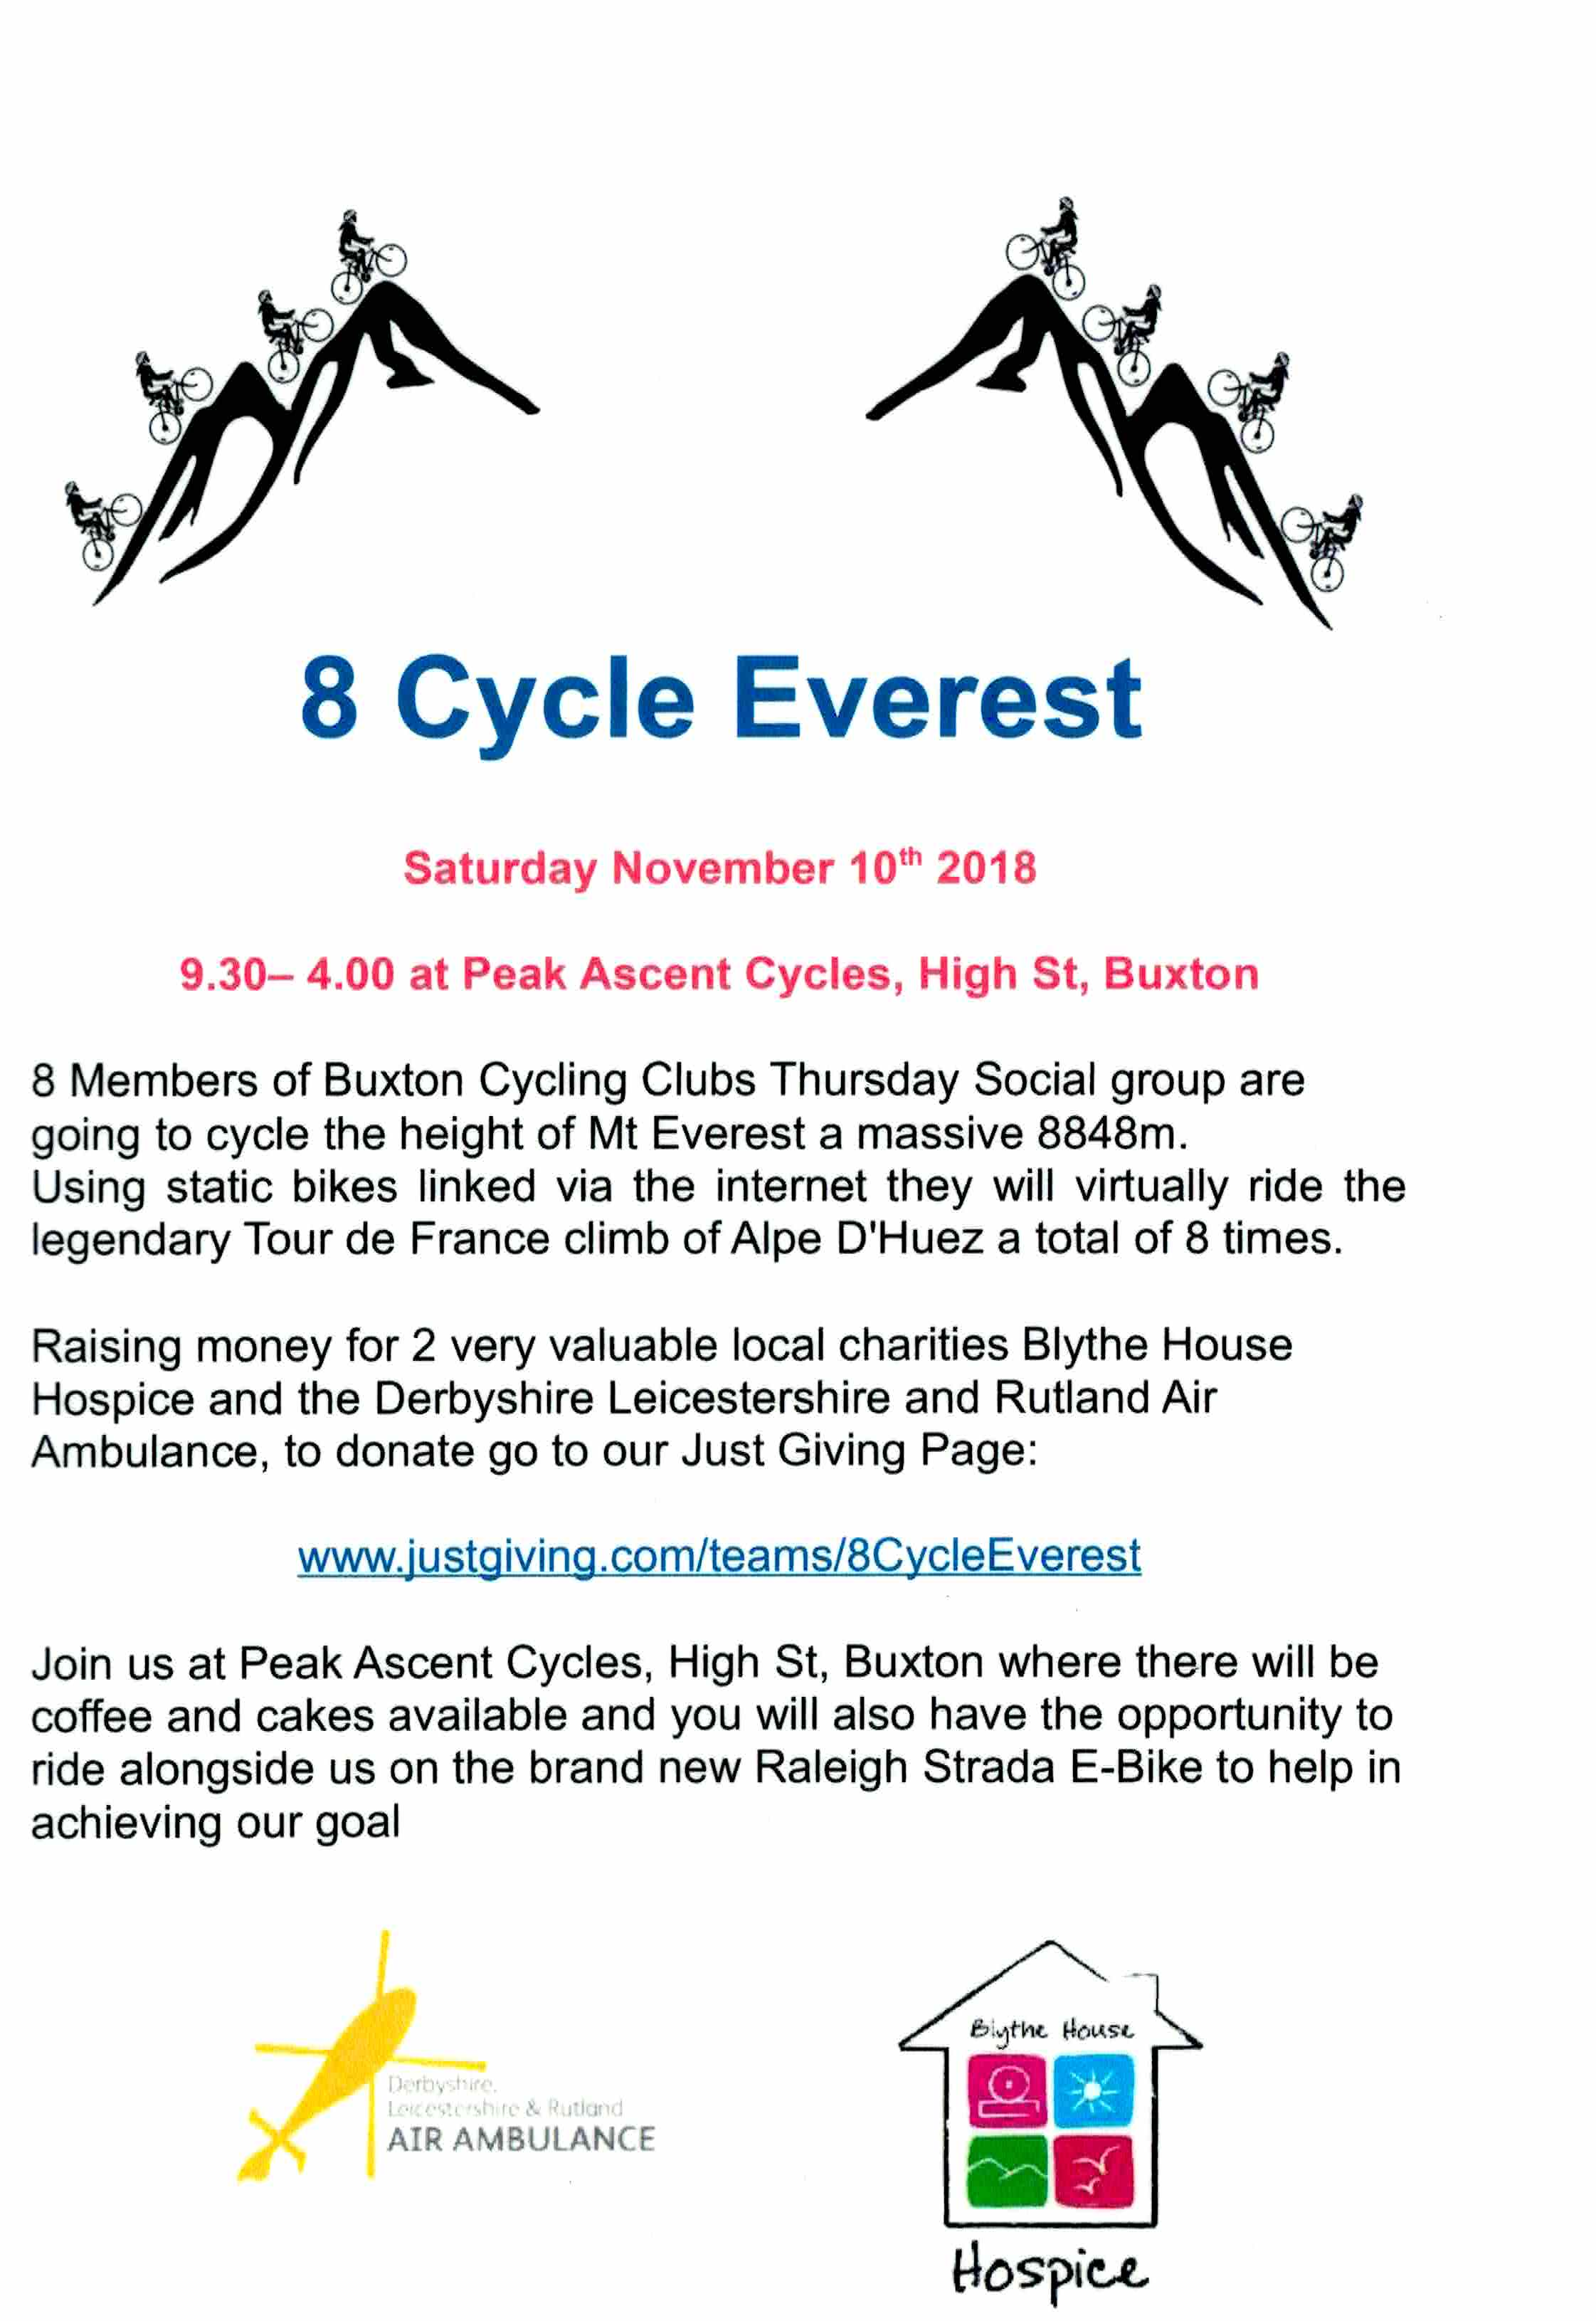 8 Cycle Everest